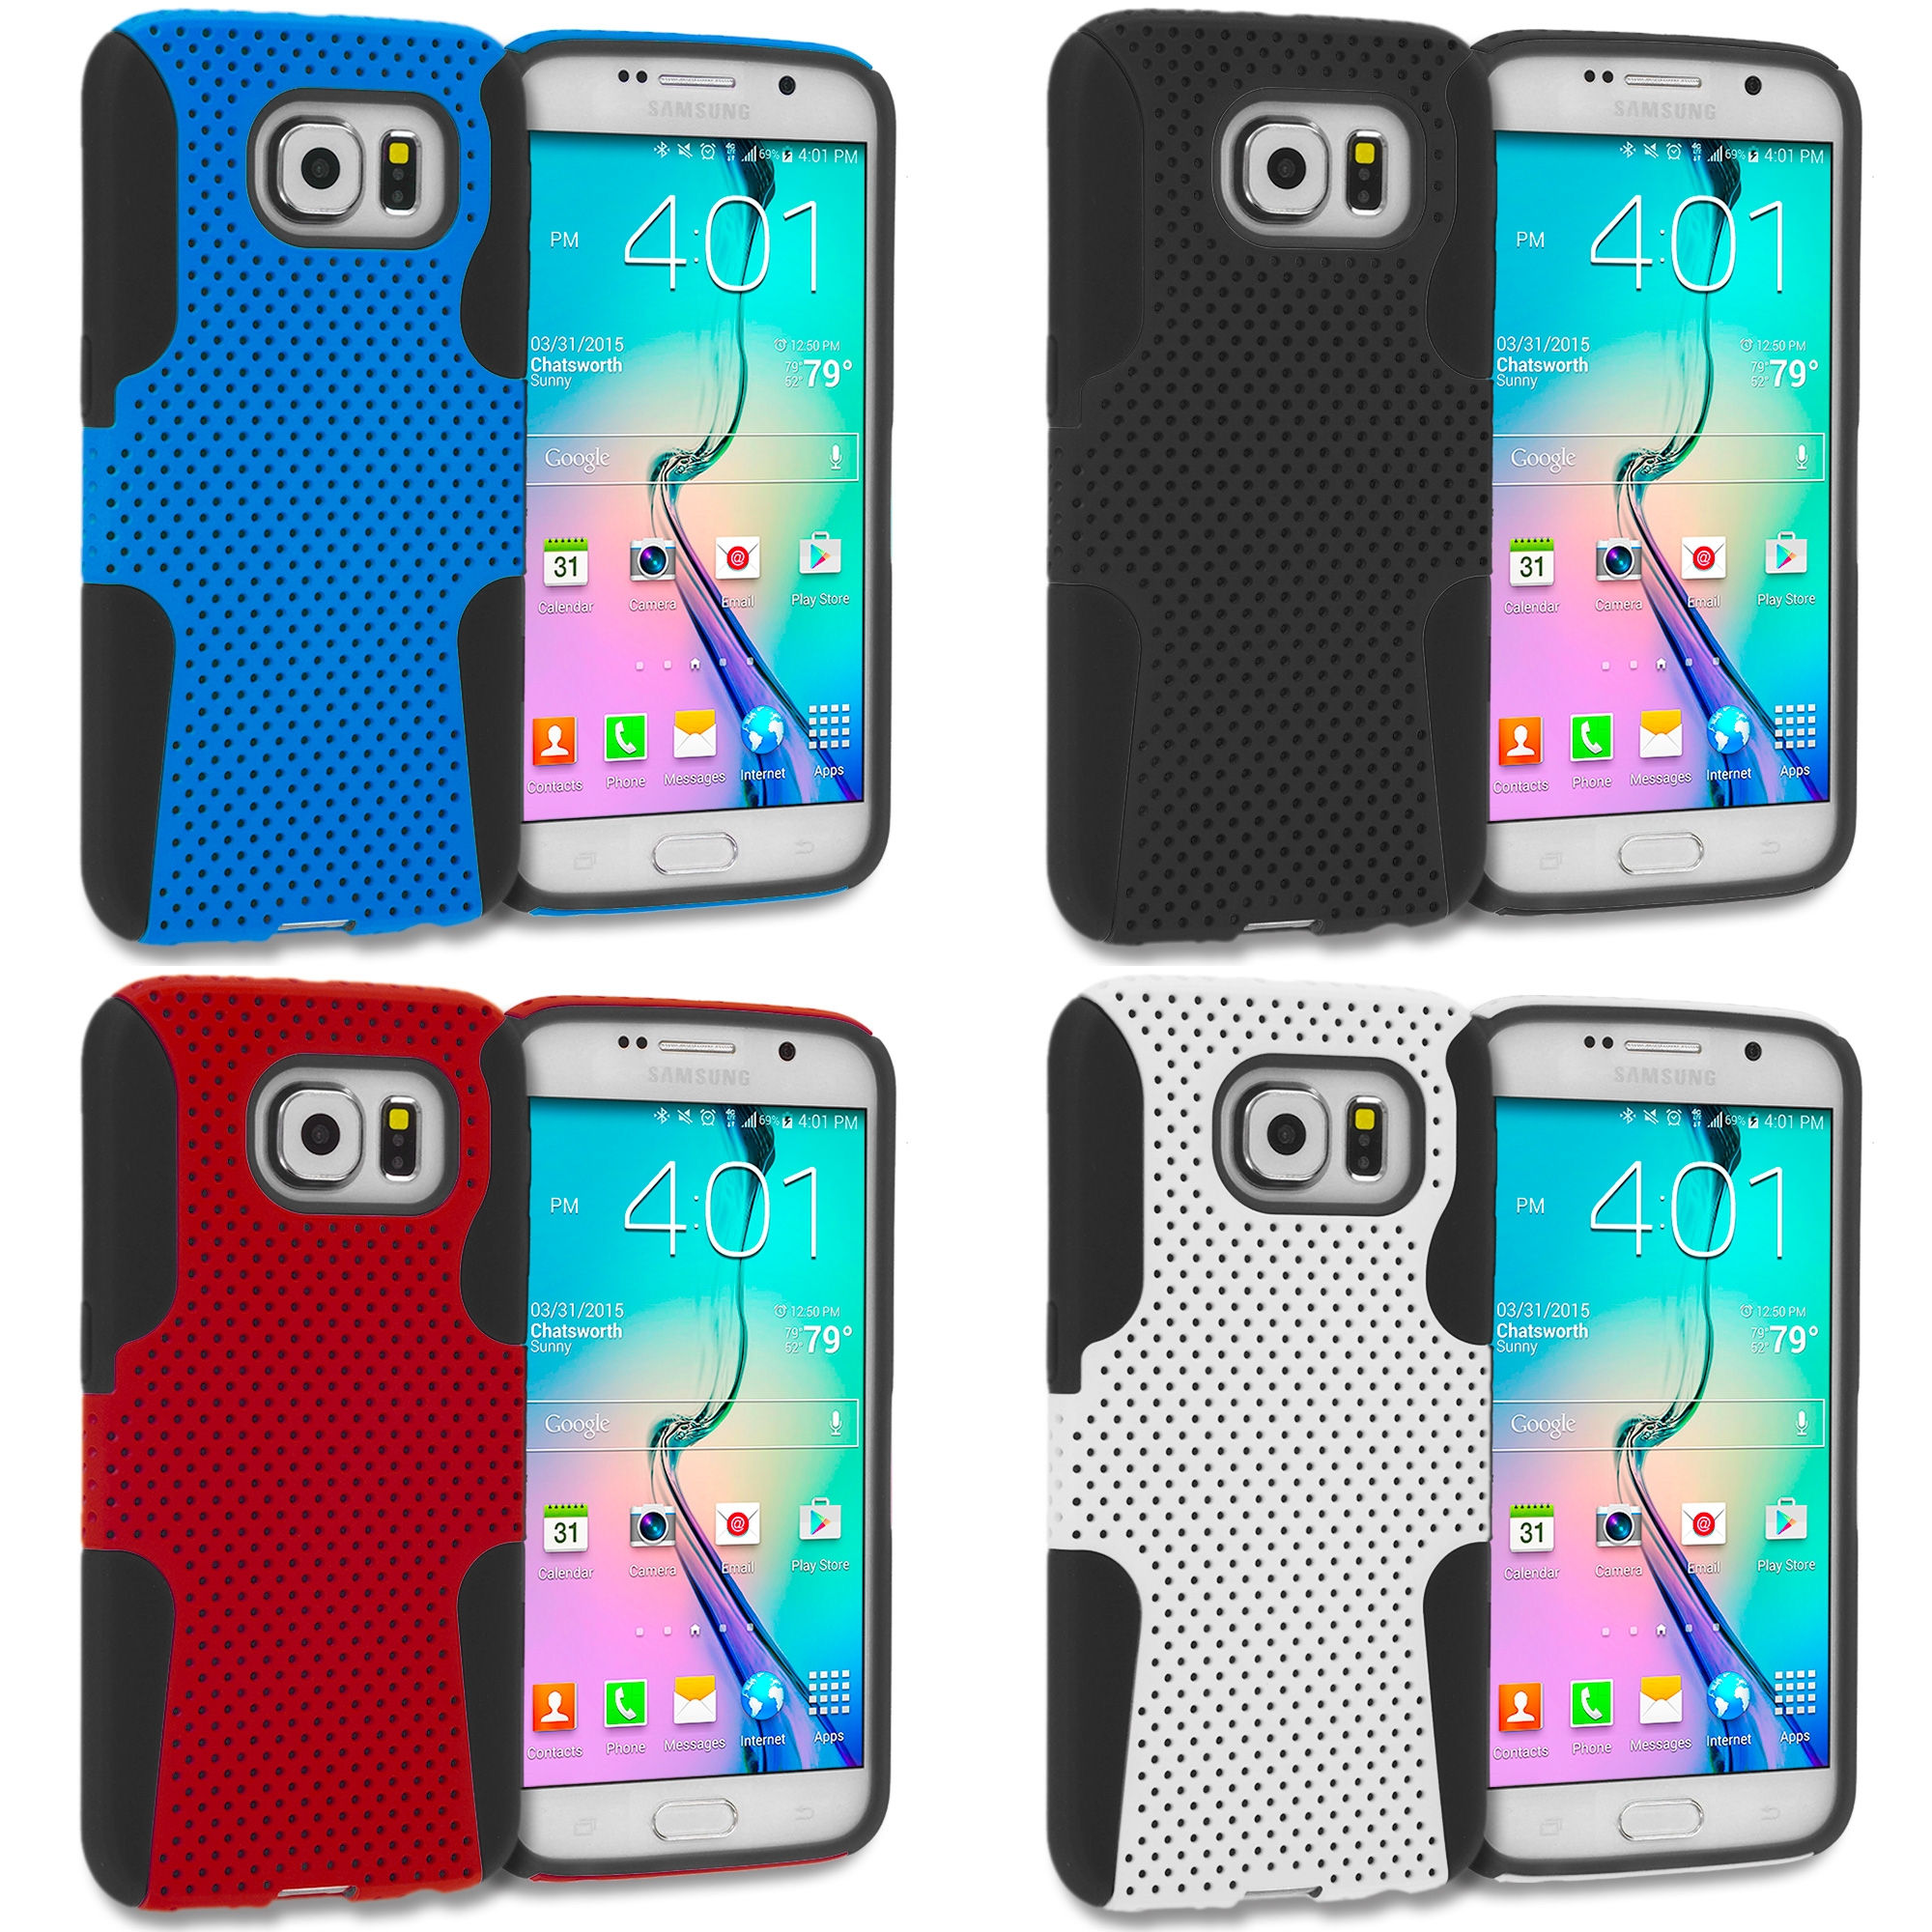 Samsung Galaxy S6 4 in 1 Combo Bundle Pack - Hybrid Mesh Hard/Soft Case Cover